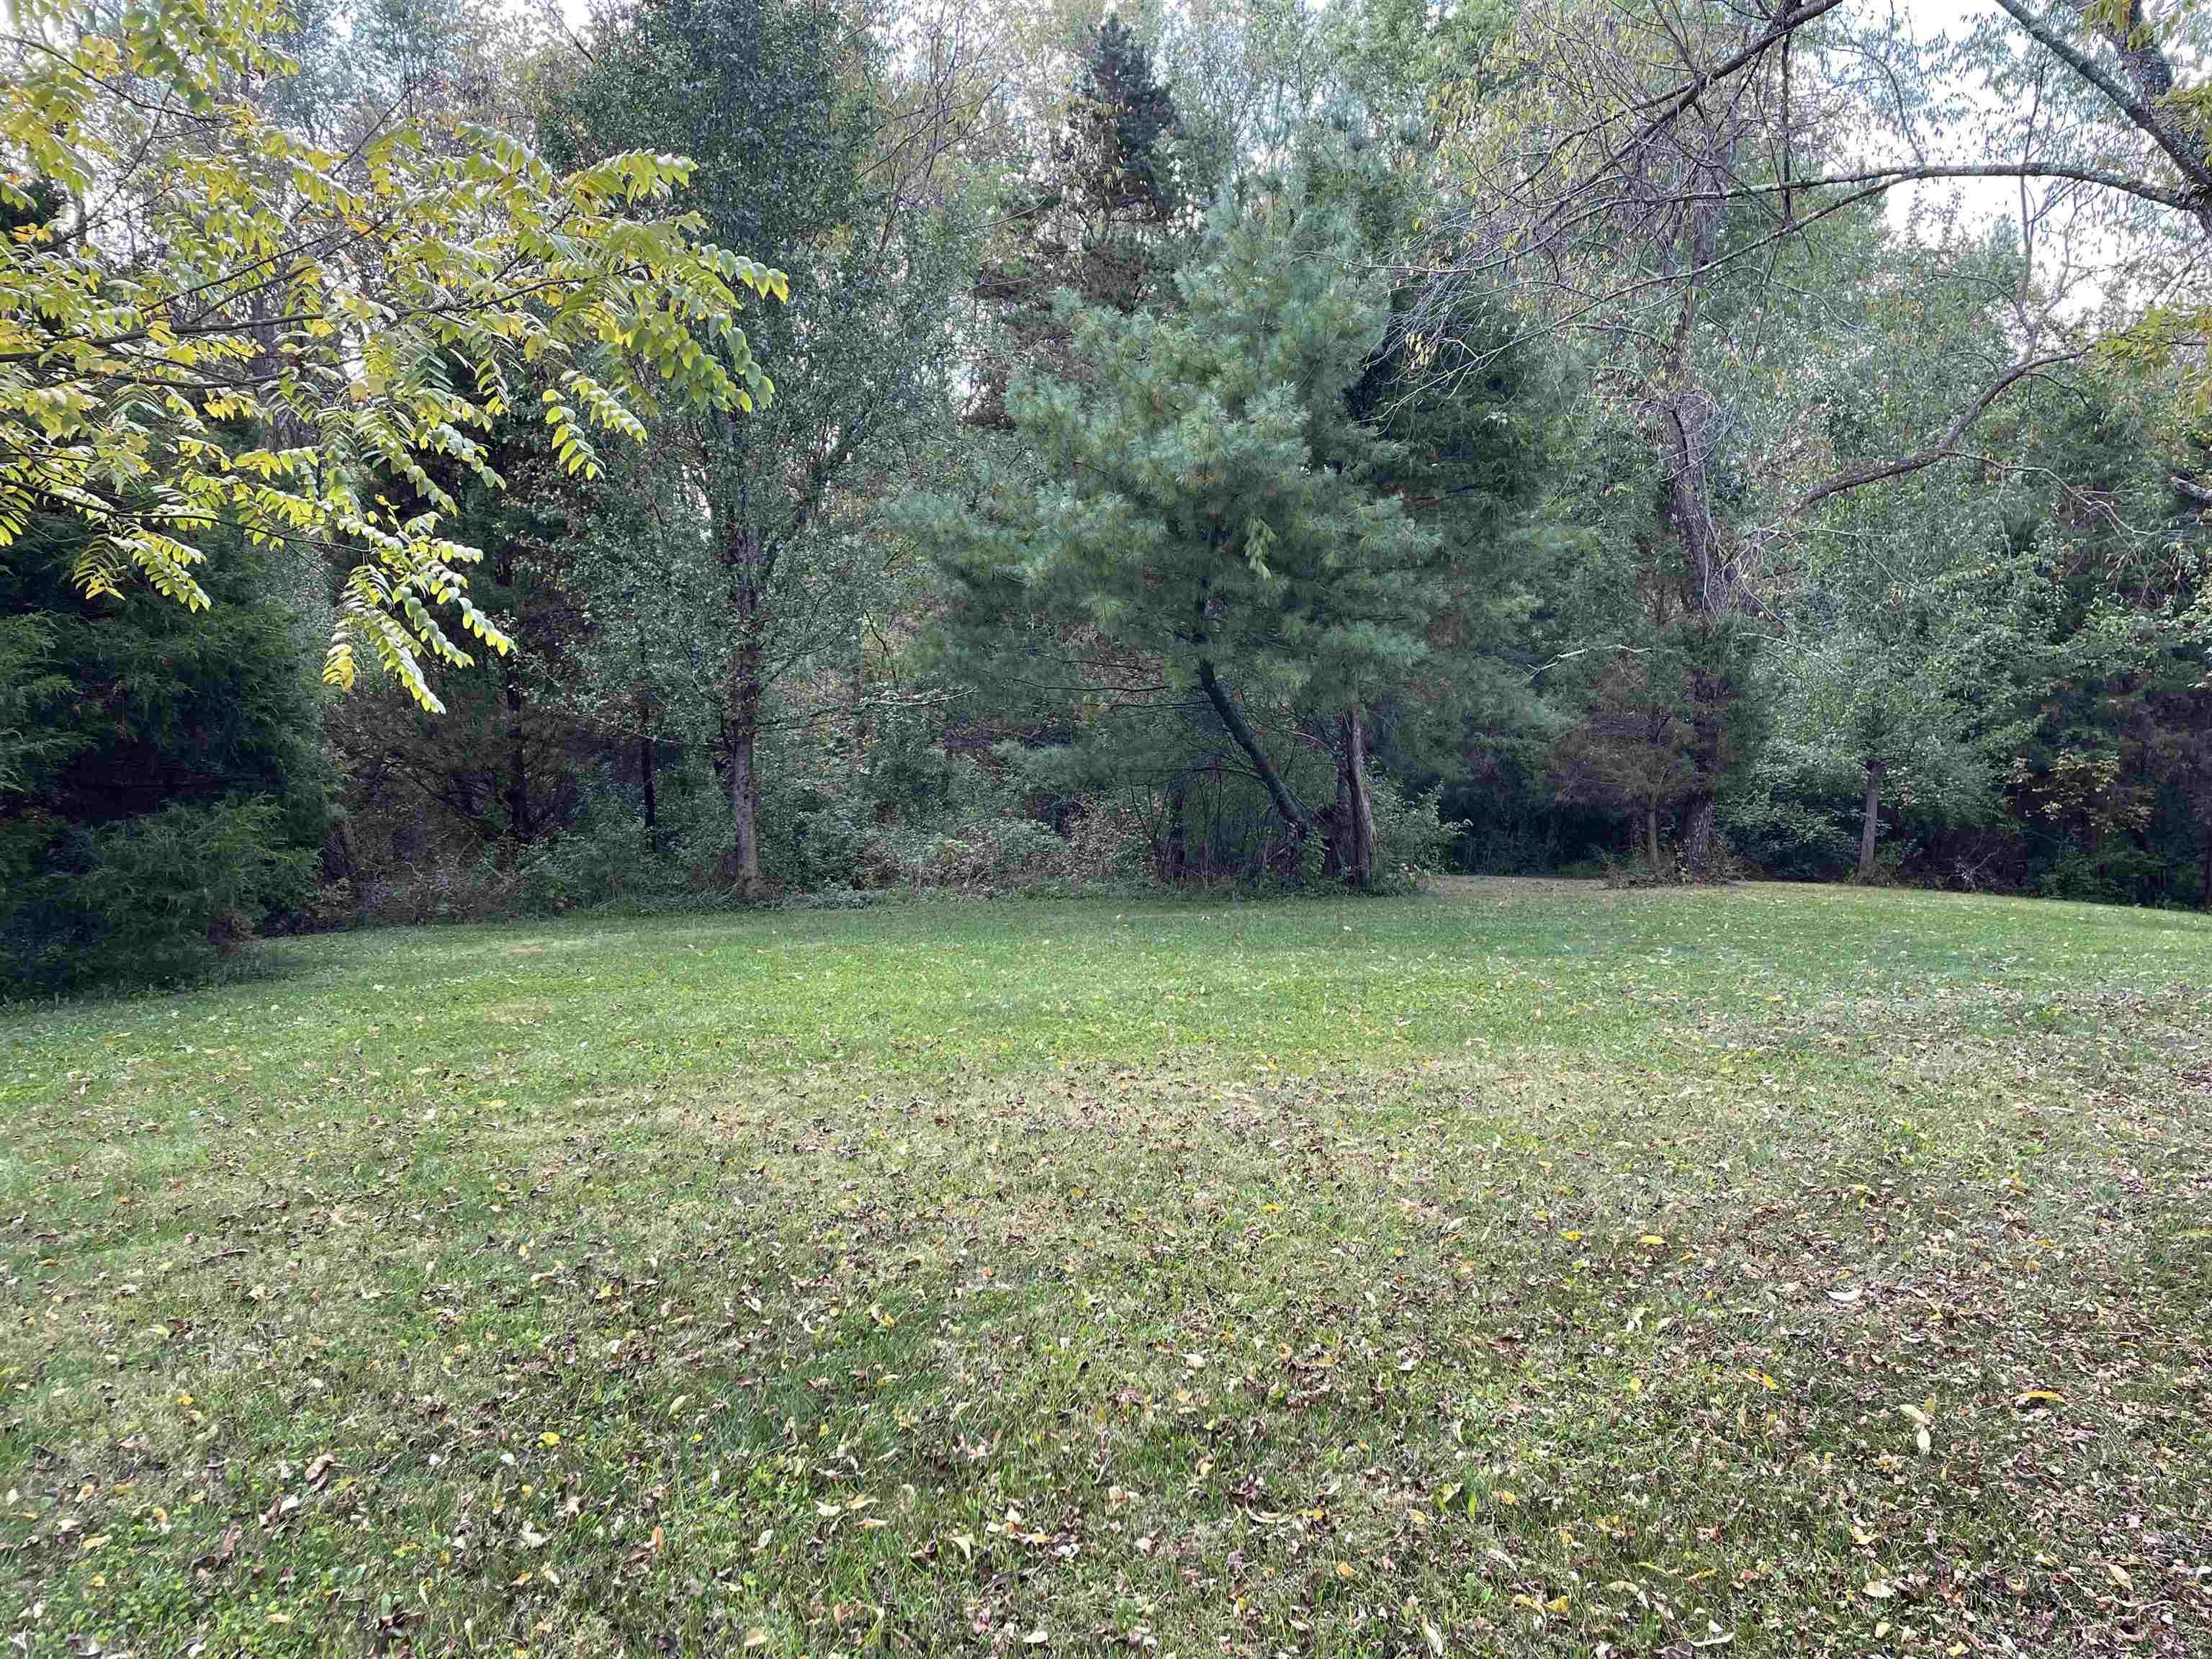 Two desirable lots available in quiet subdivision. Minutes from restaurants, shopping centers, and schools.This multi-use property is located at the end of a cul de sac on partially cleared land. Could be used for residential or multi-family unit. Corners are marked and a fence follows majority of the back property lines. Outside of town limits.